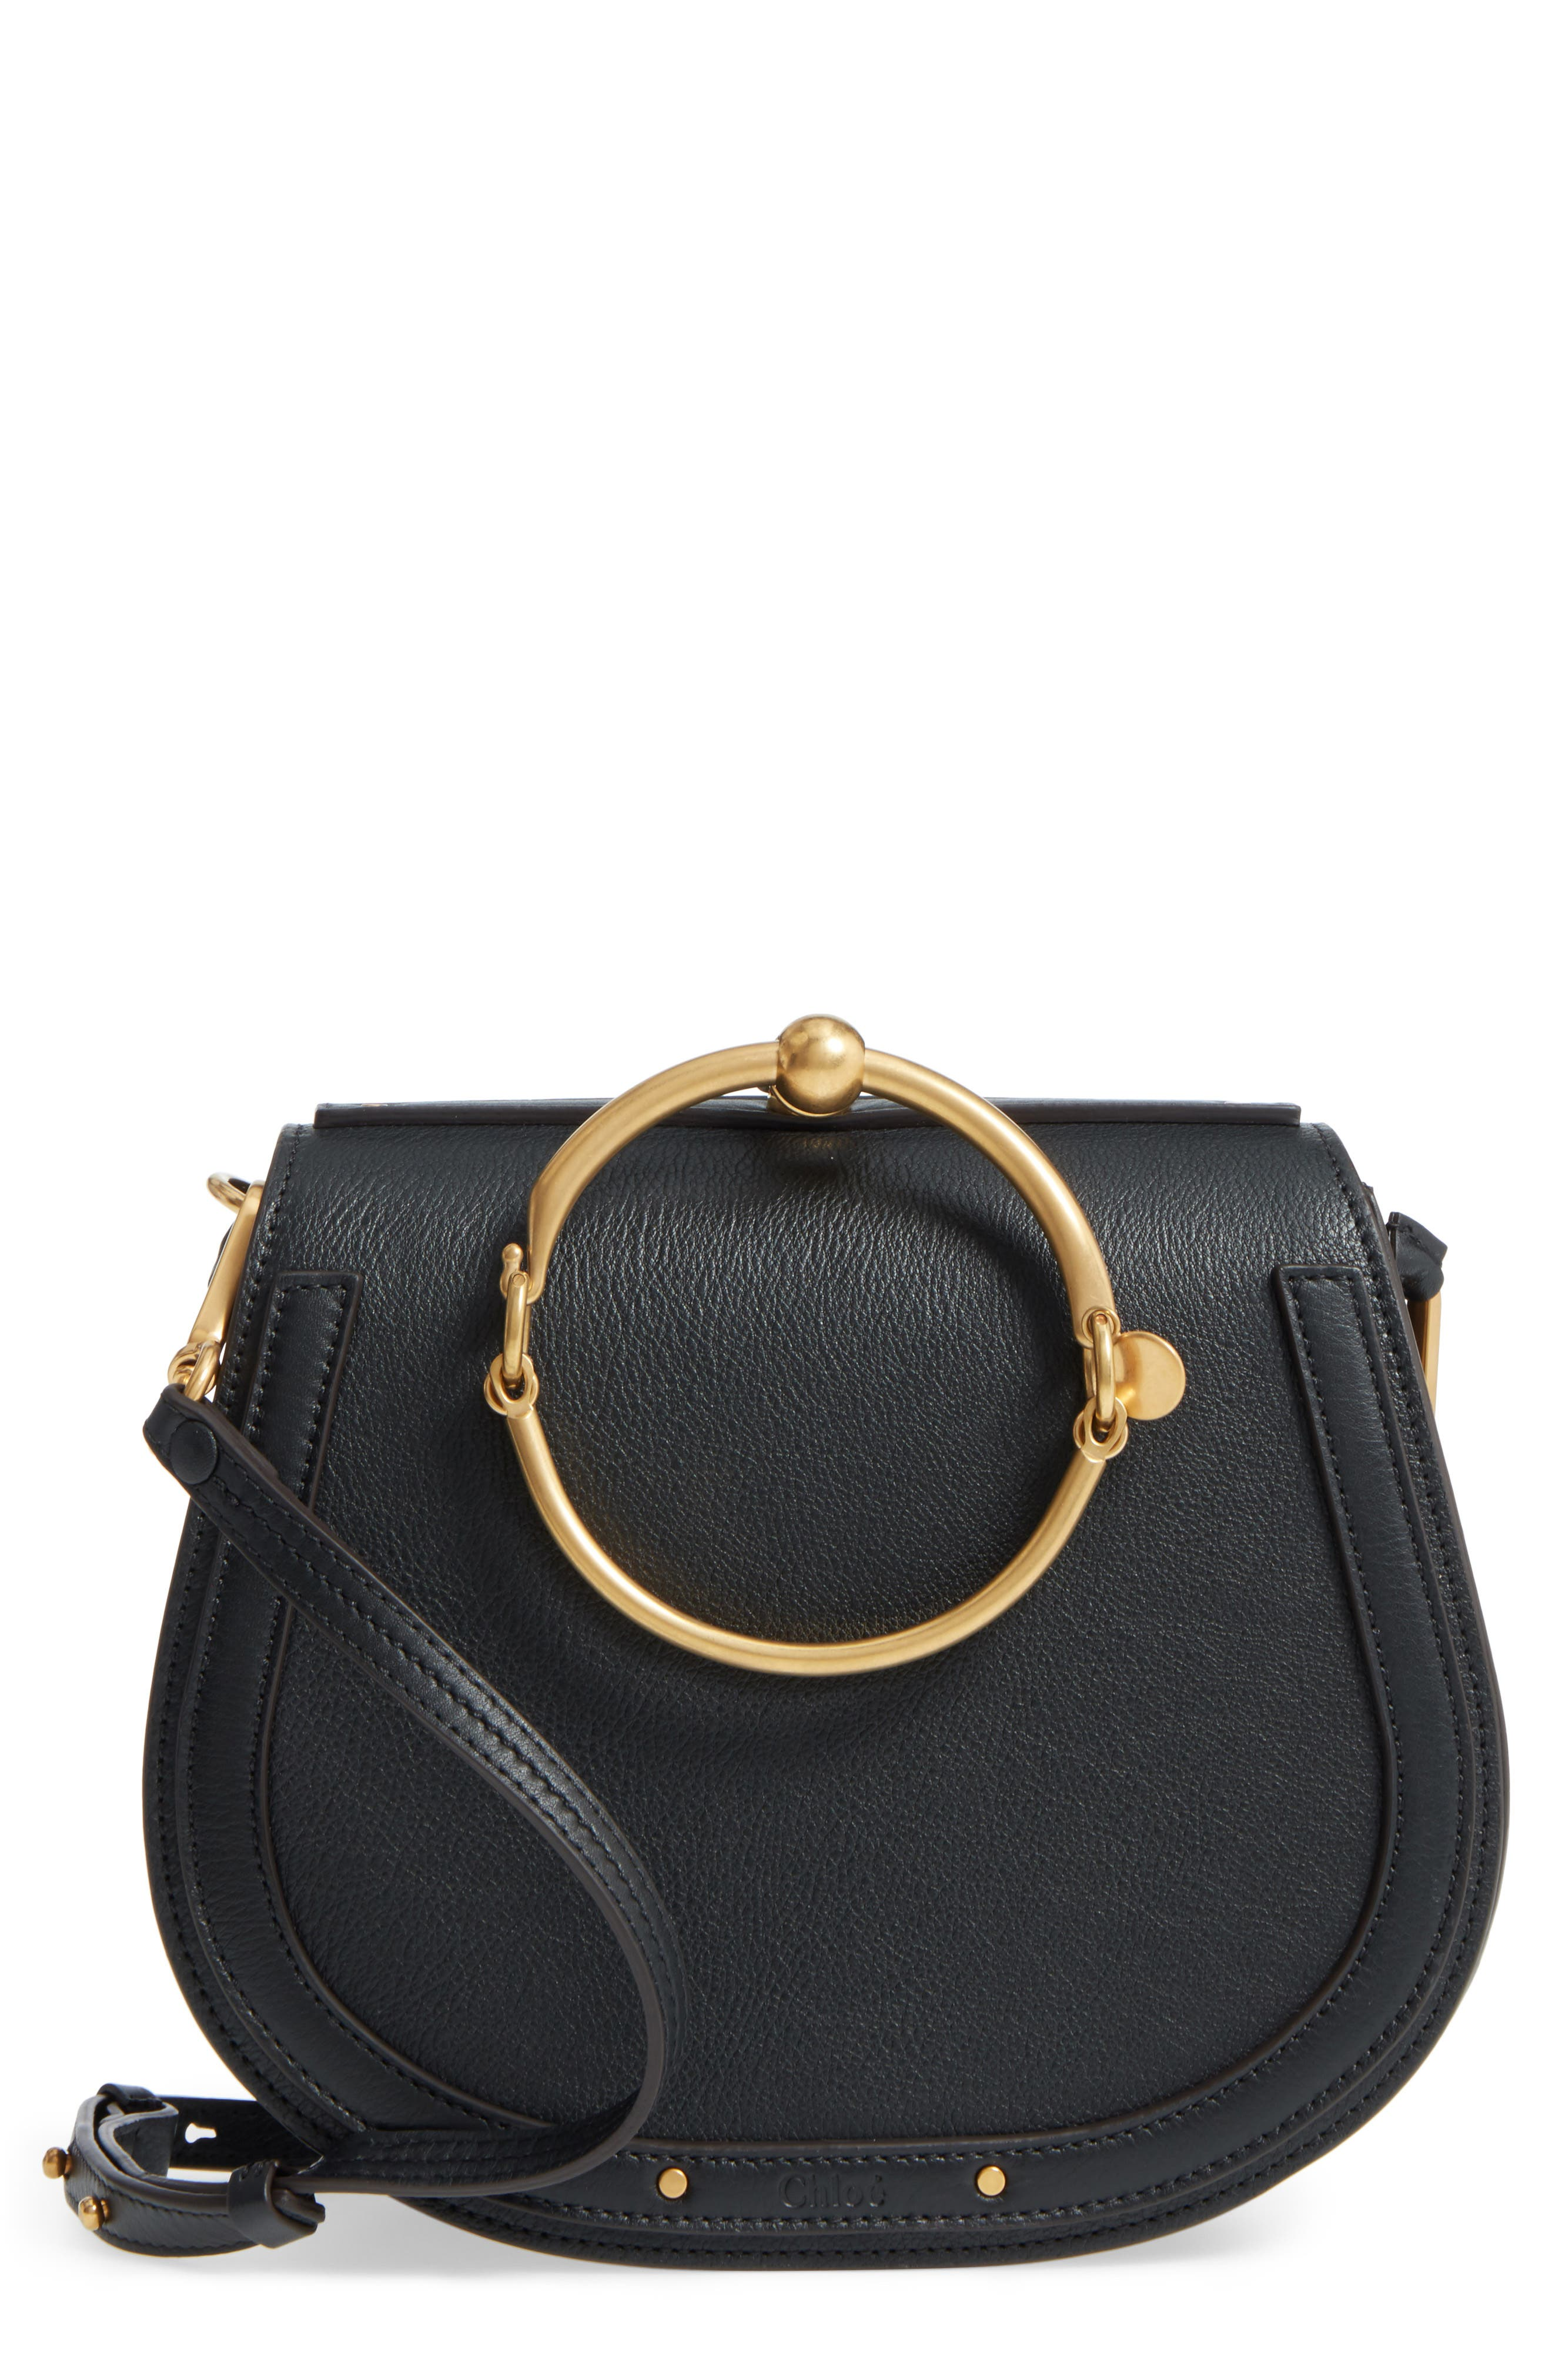 Medium Nile Leather Bracelet Saddle Bag,                         Main,                         color, 001NR001 BLACK